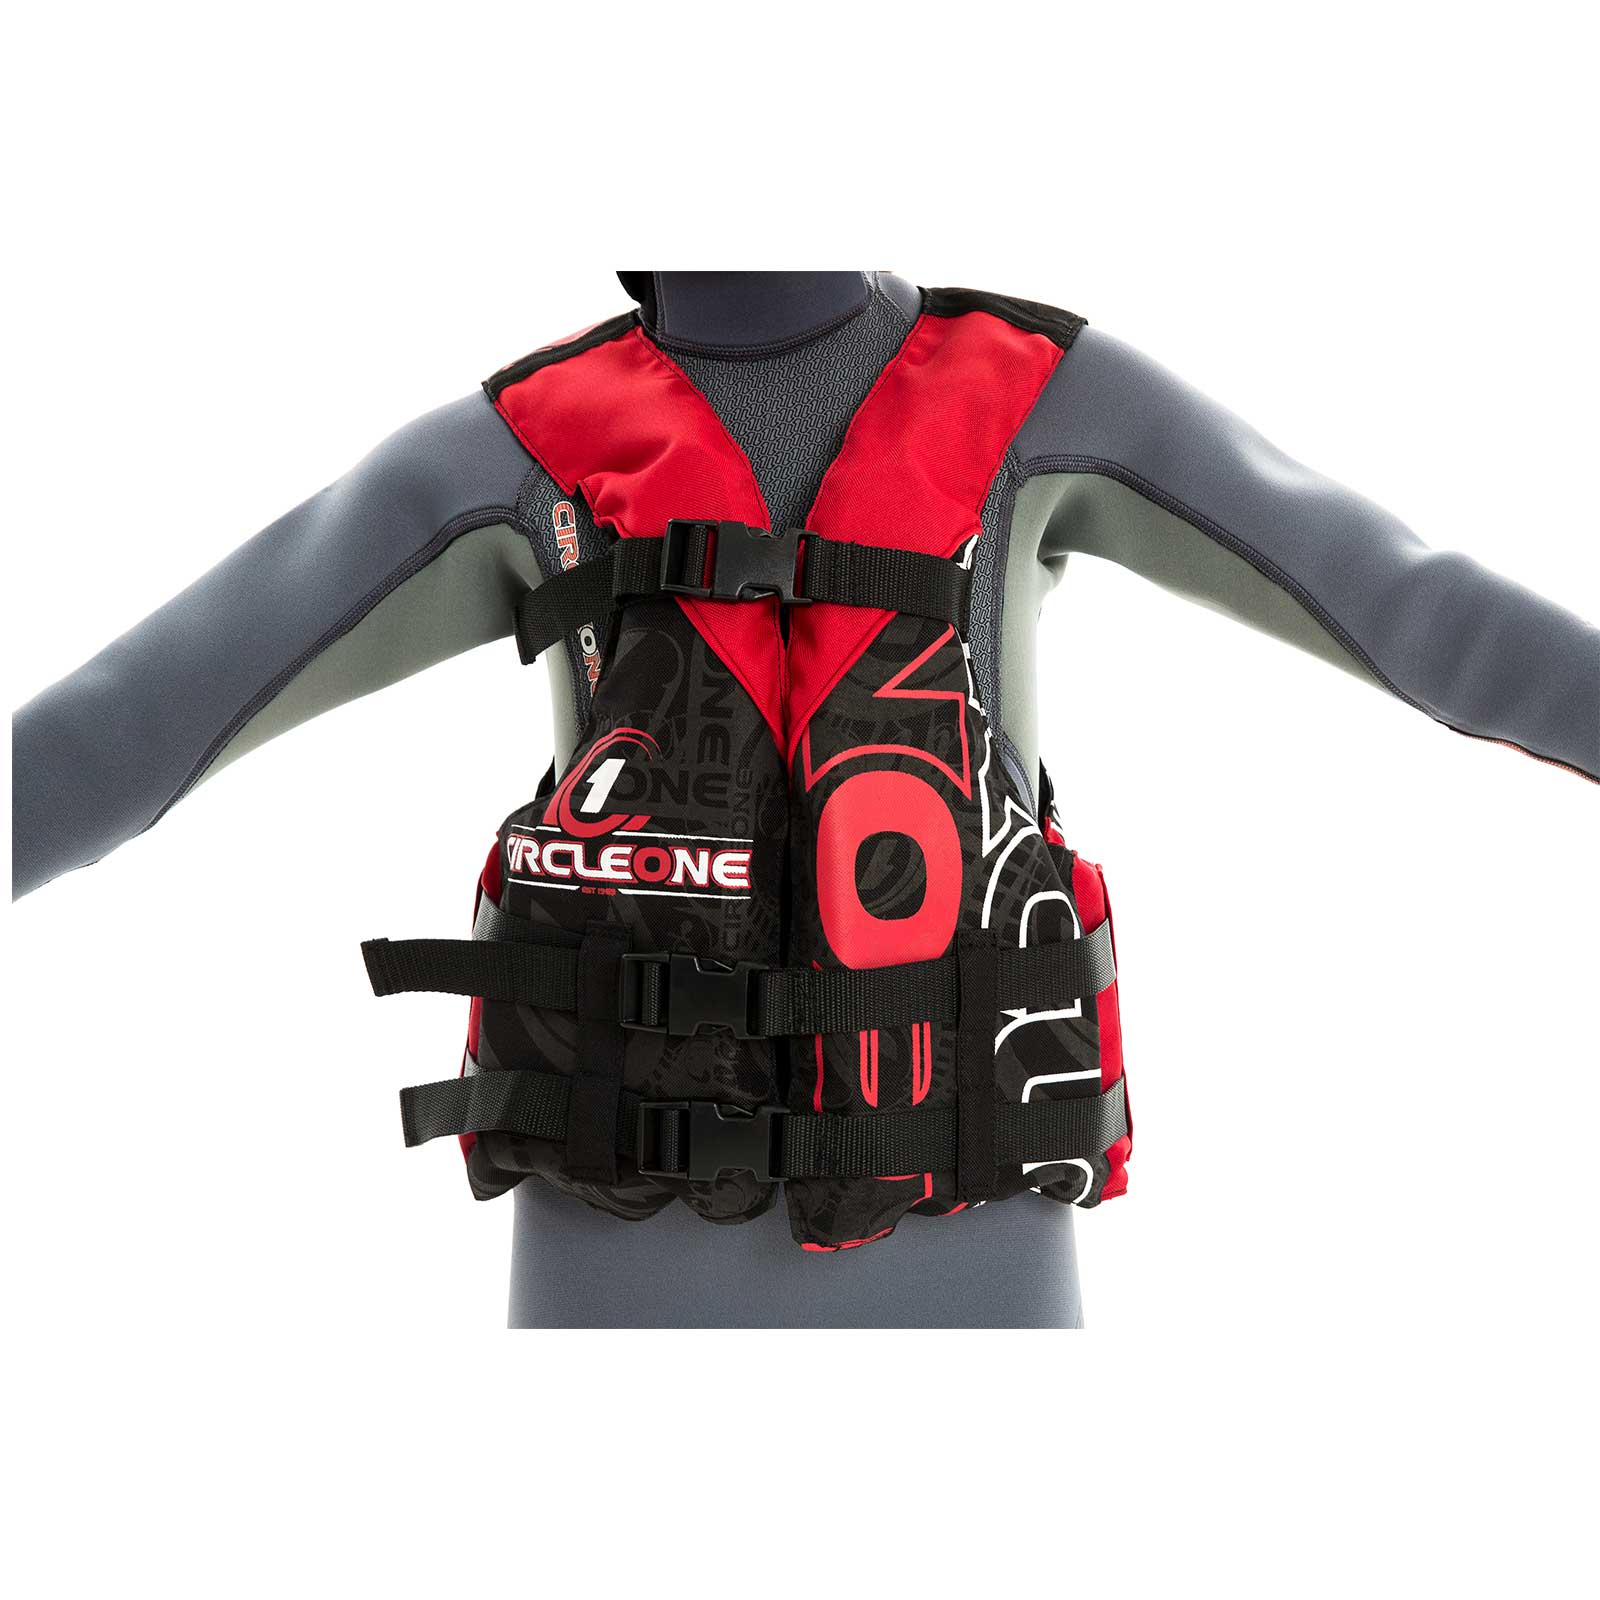 40N Youth Buoyancy Aid with 3 Straps (CE EN393)